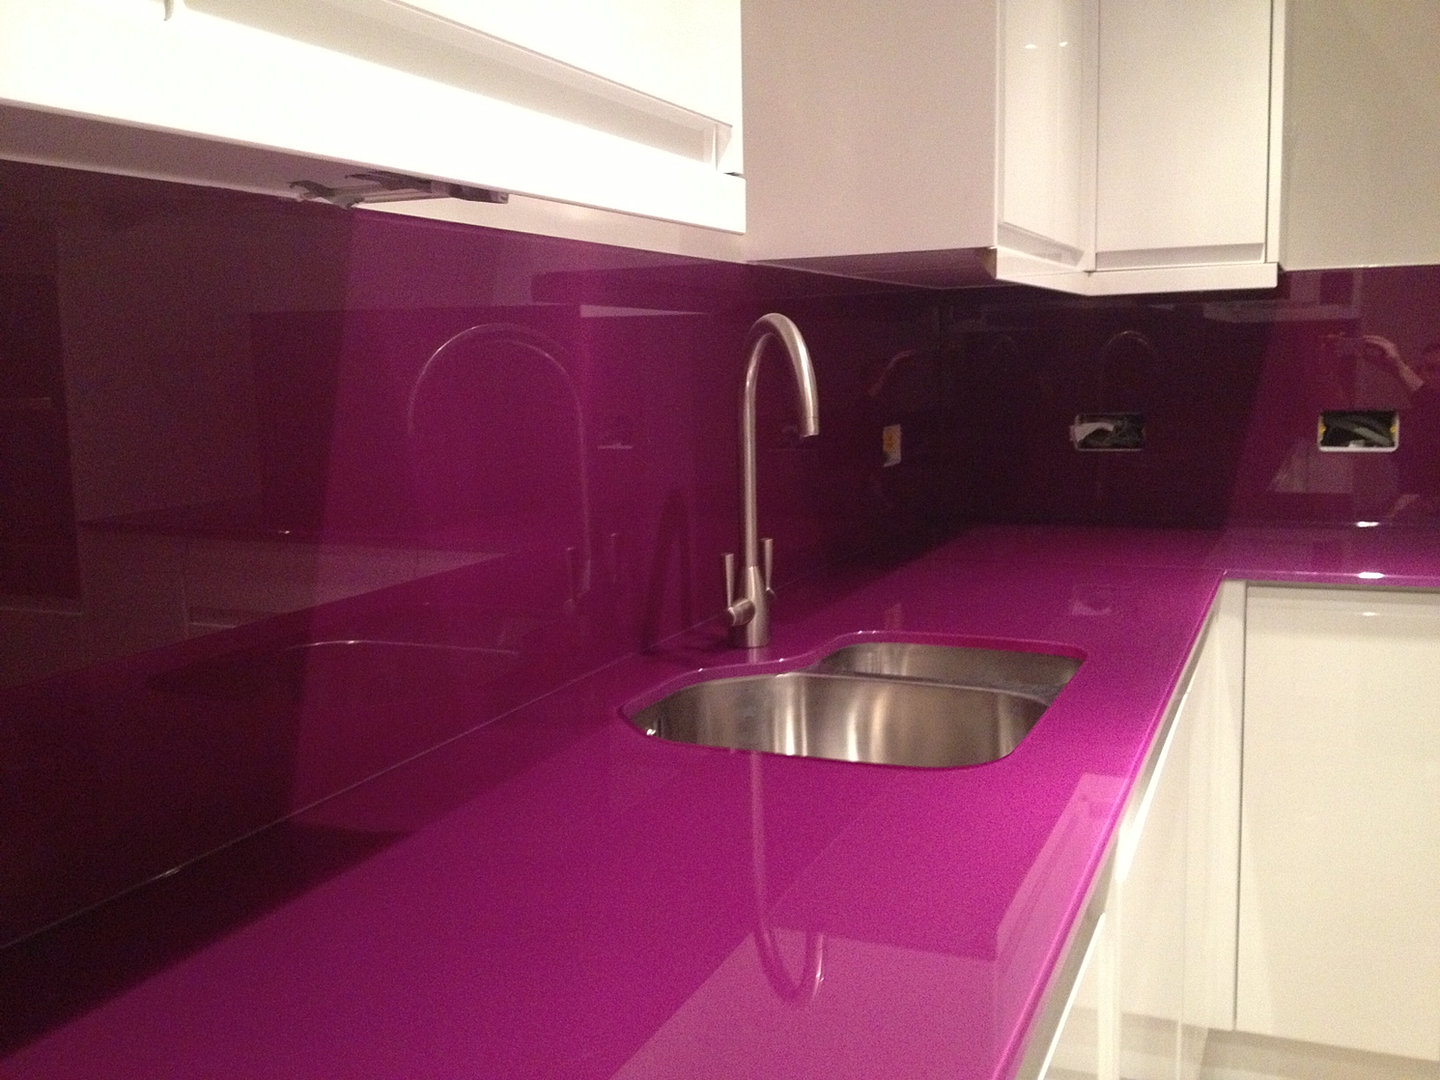 Glass splashbacks for bathroom sinks - Luxglass Splashback Purple